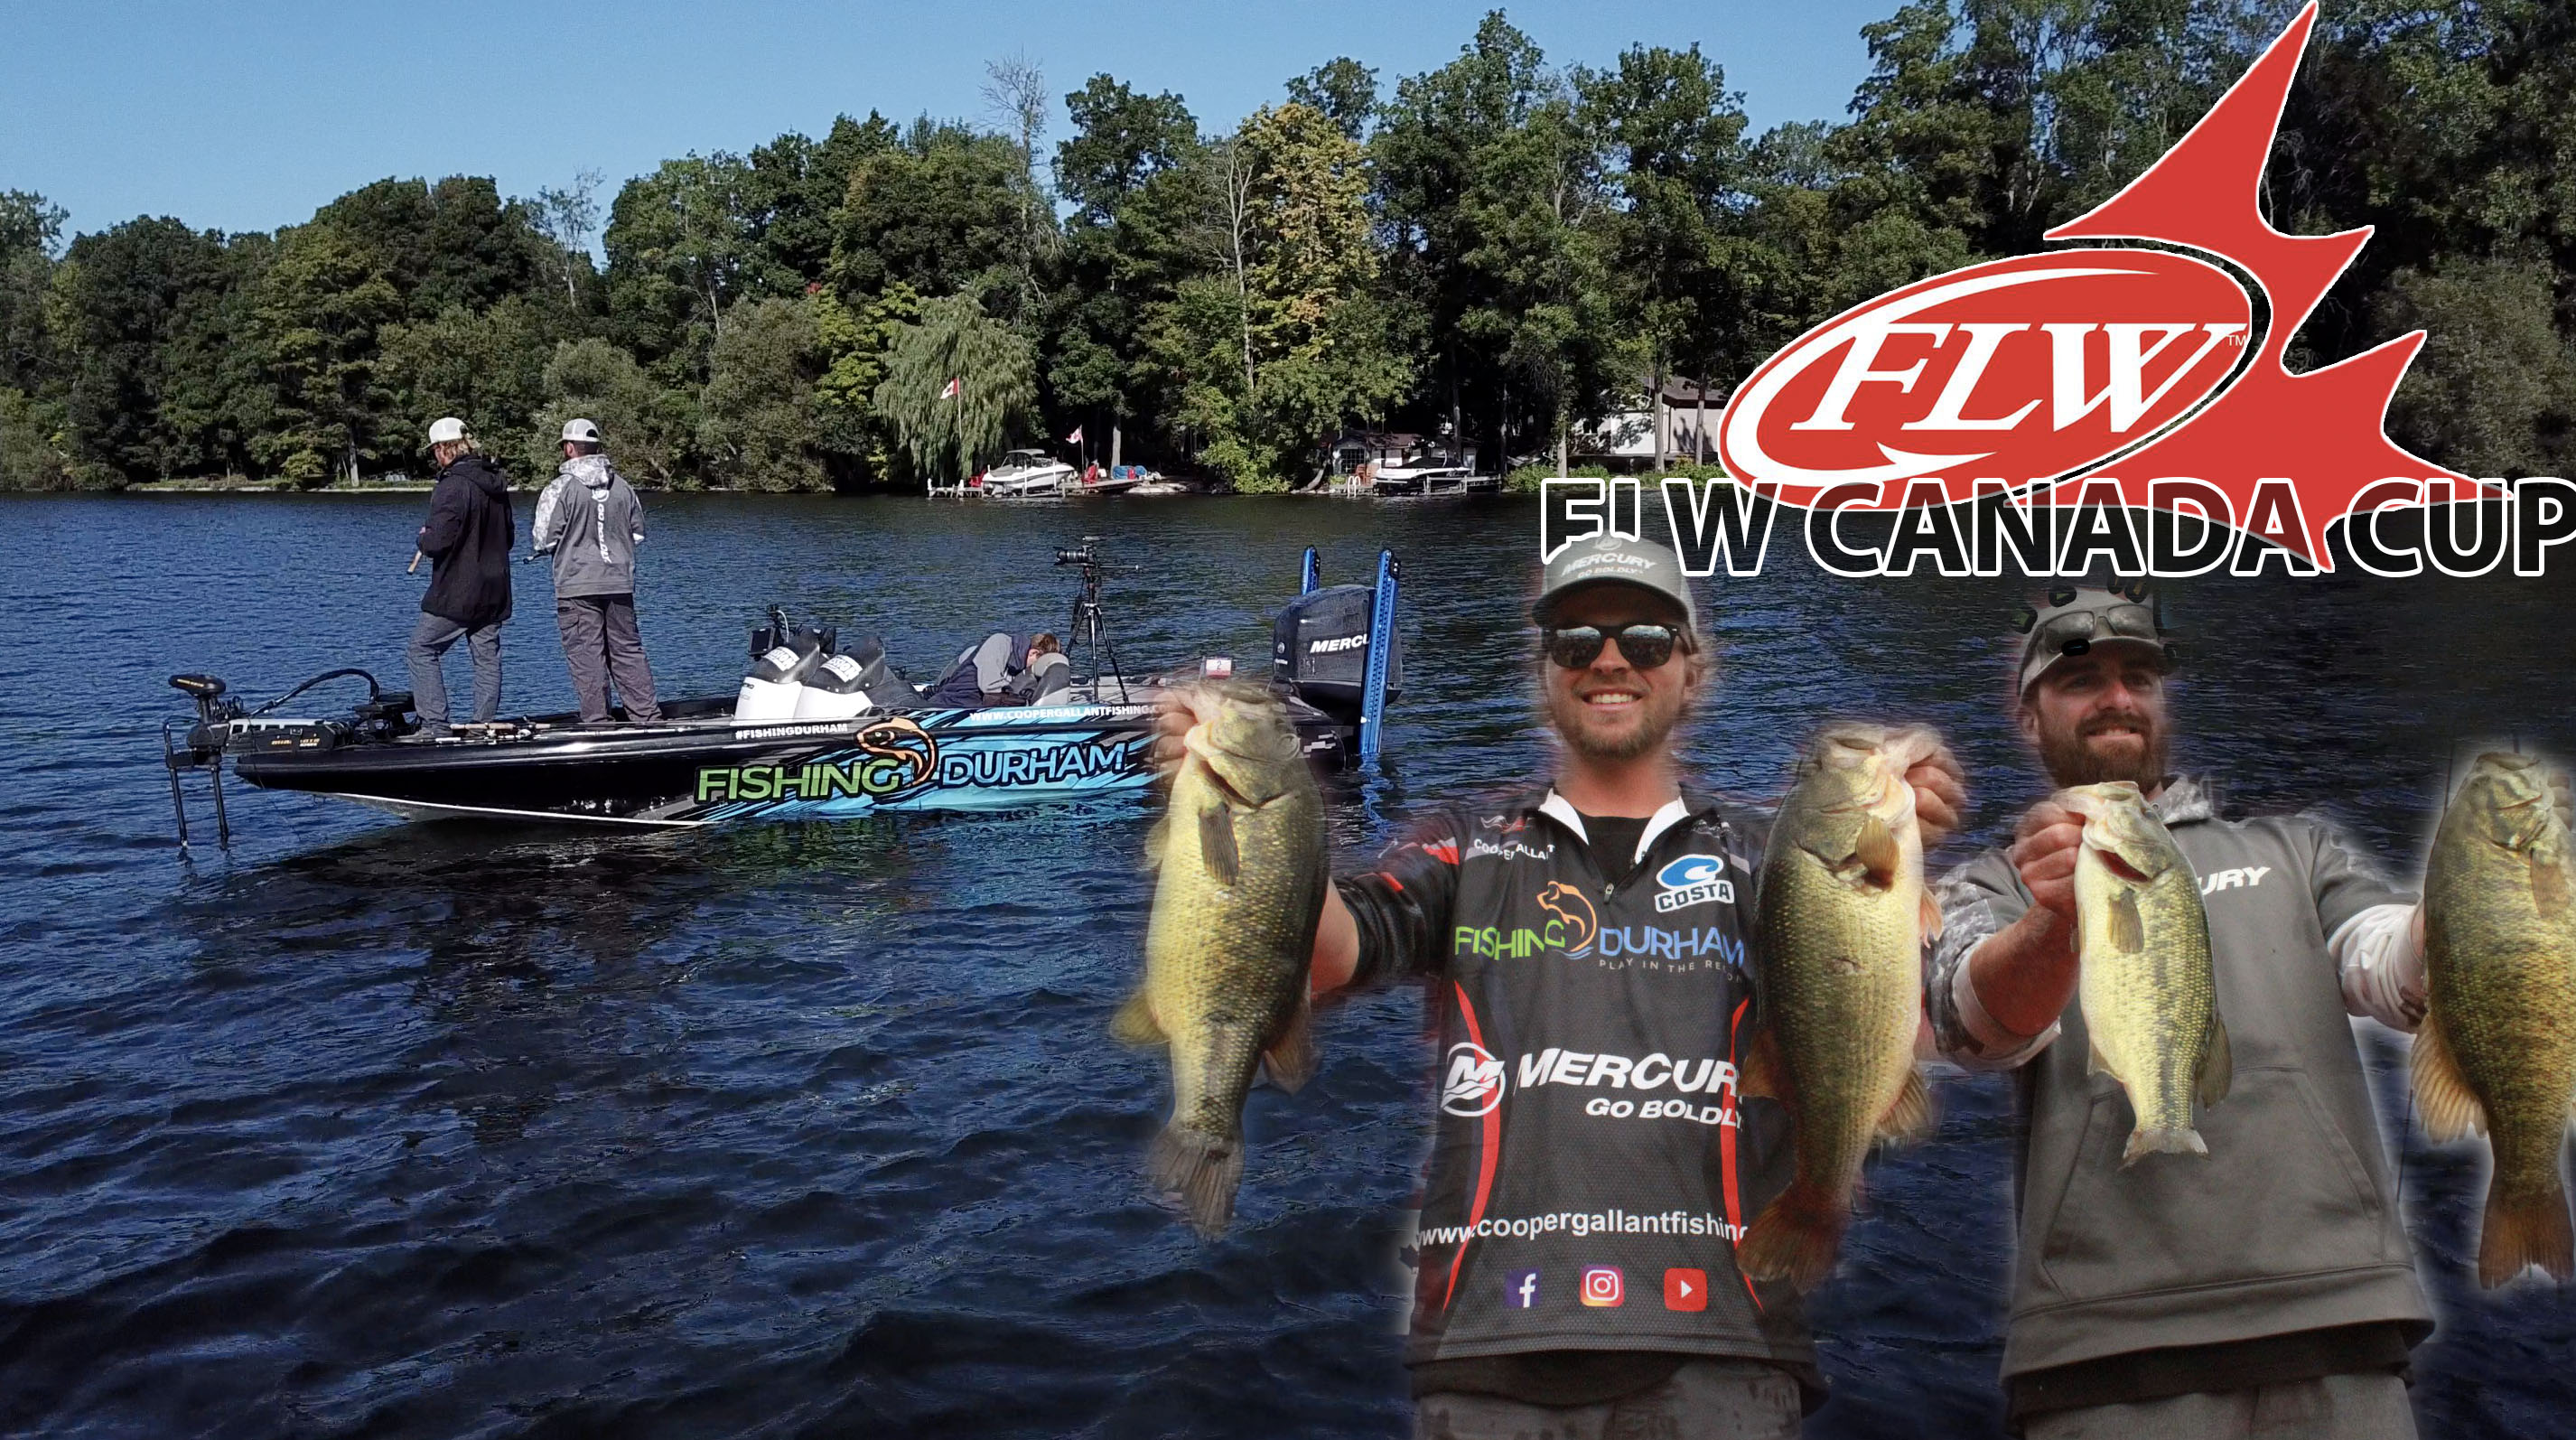 Video: 2019 FLW Canada Cup - Bay of Quinte, Ontario - Cooper Gallant